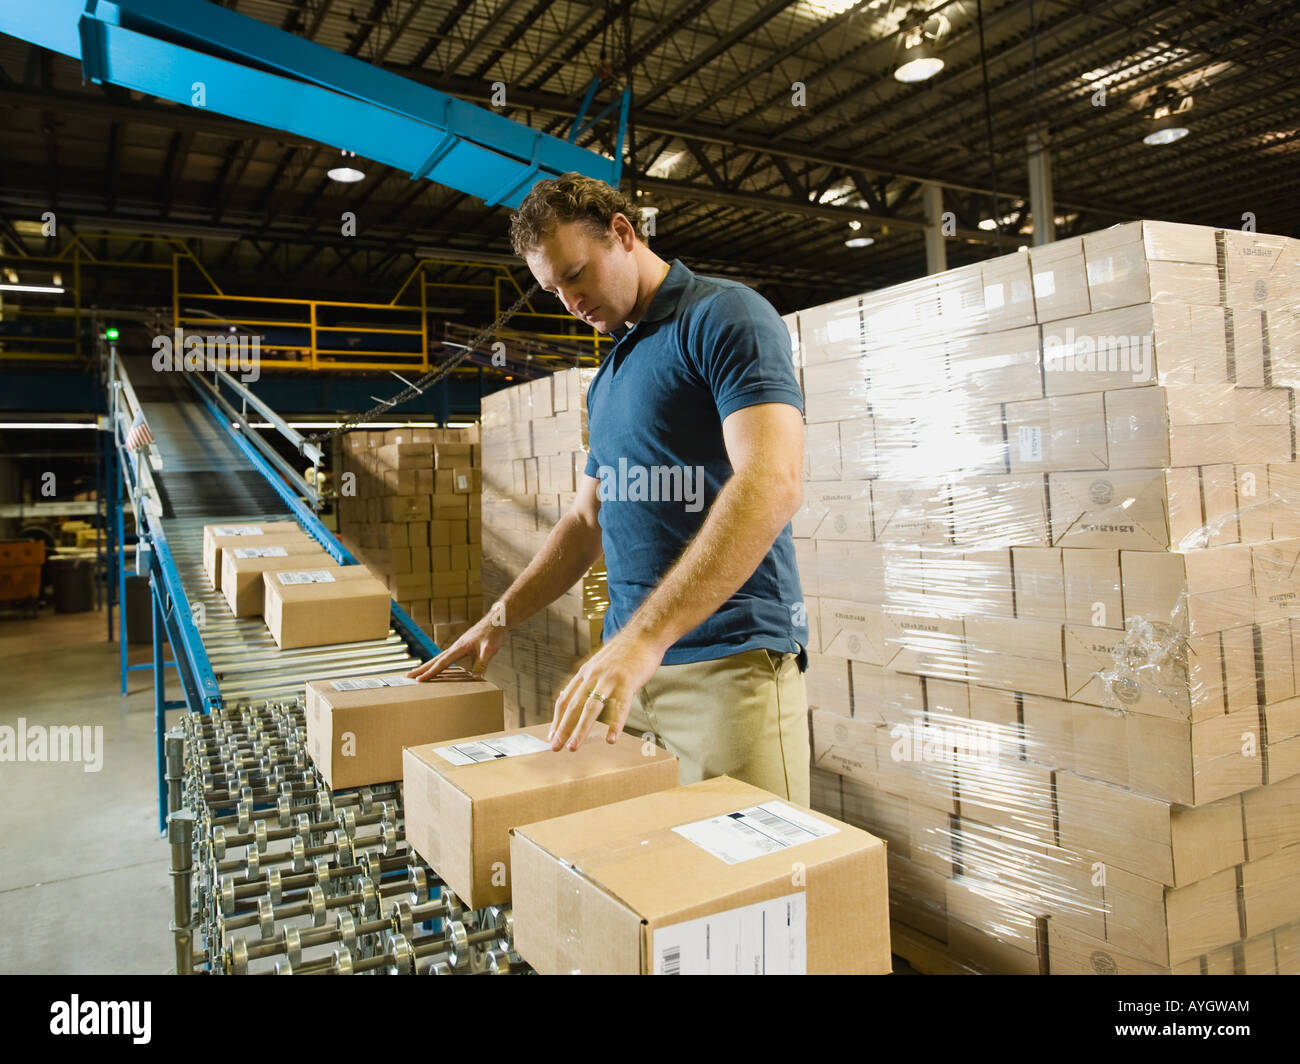 Warehouse worker checking packages on conveyor belt - Stock Image